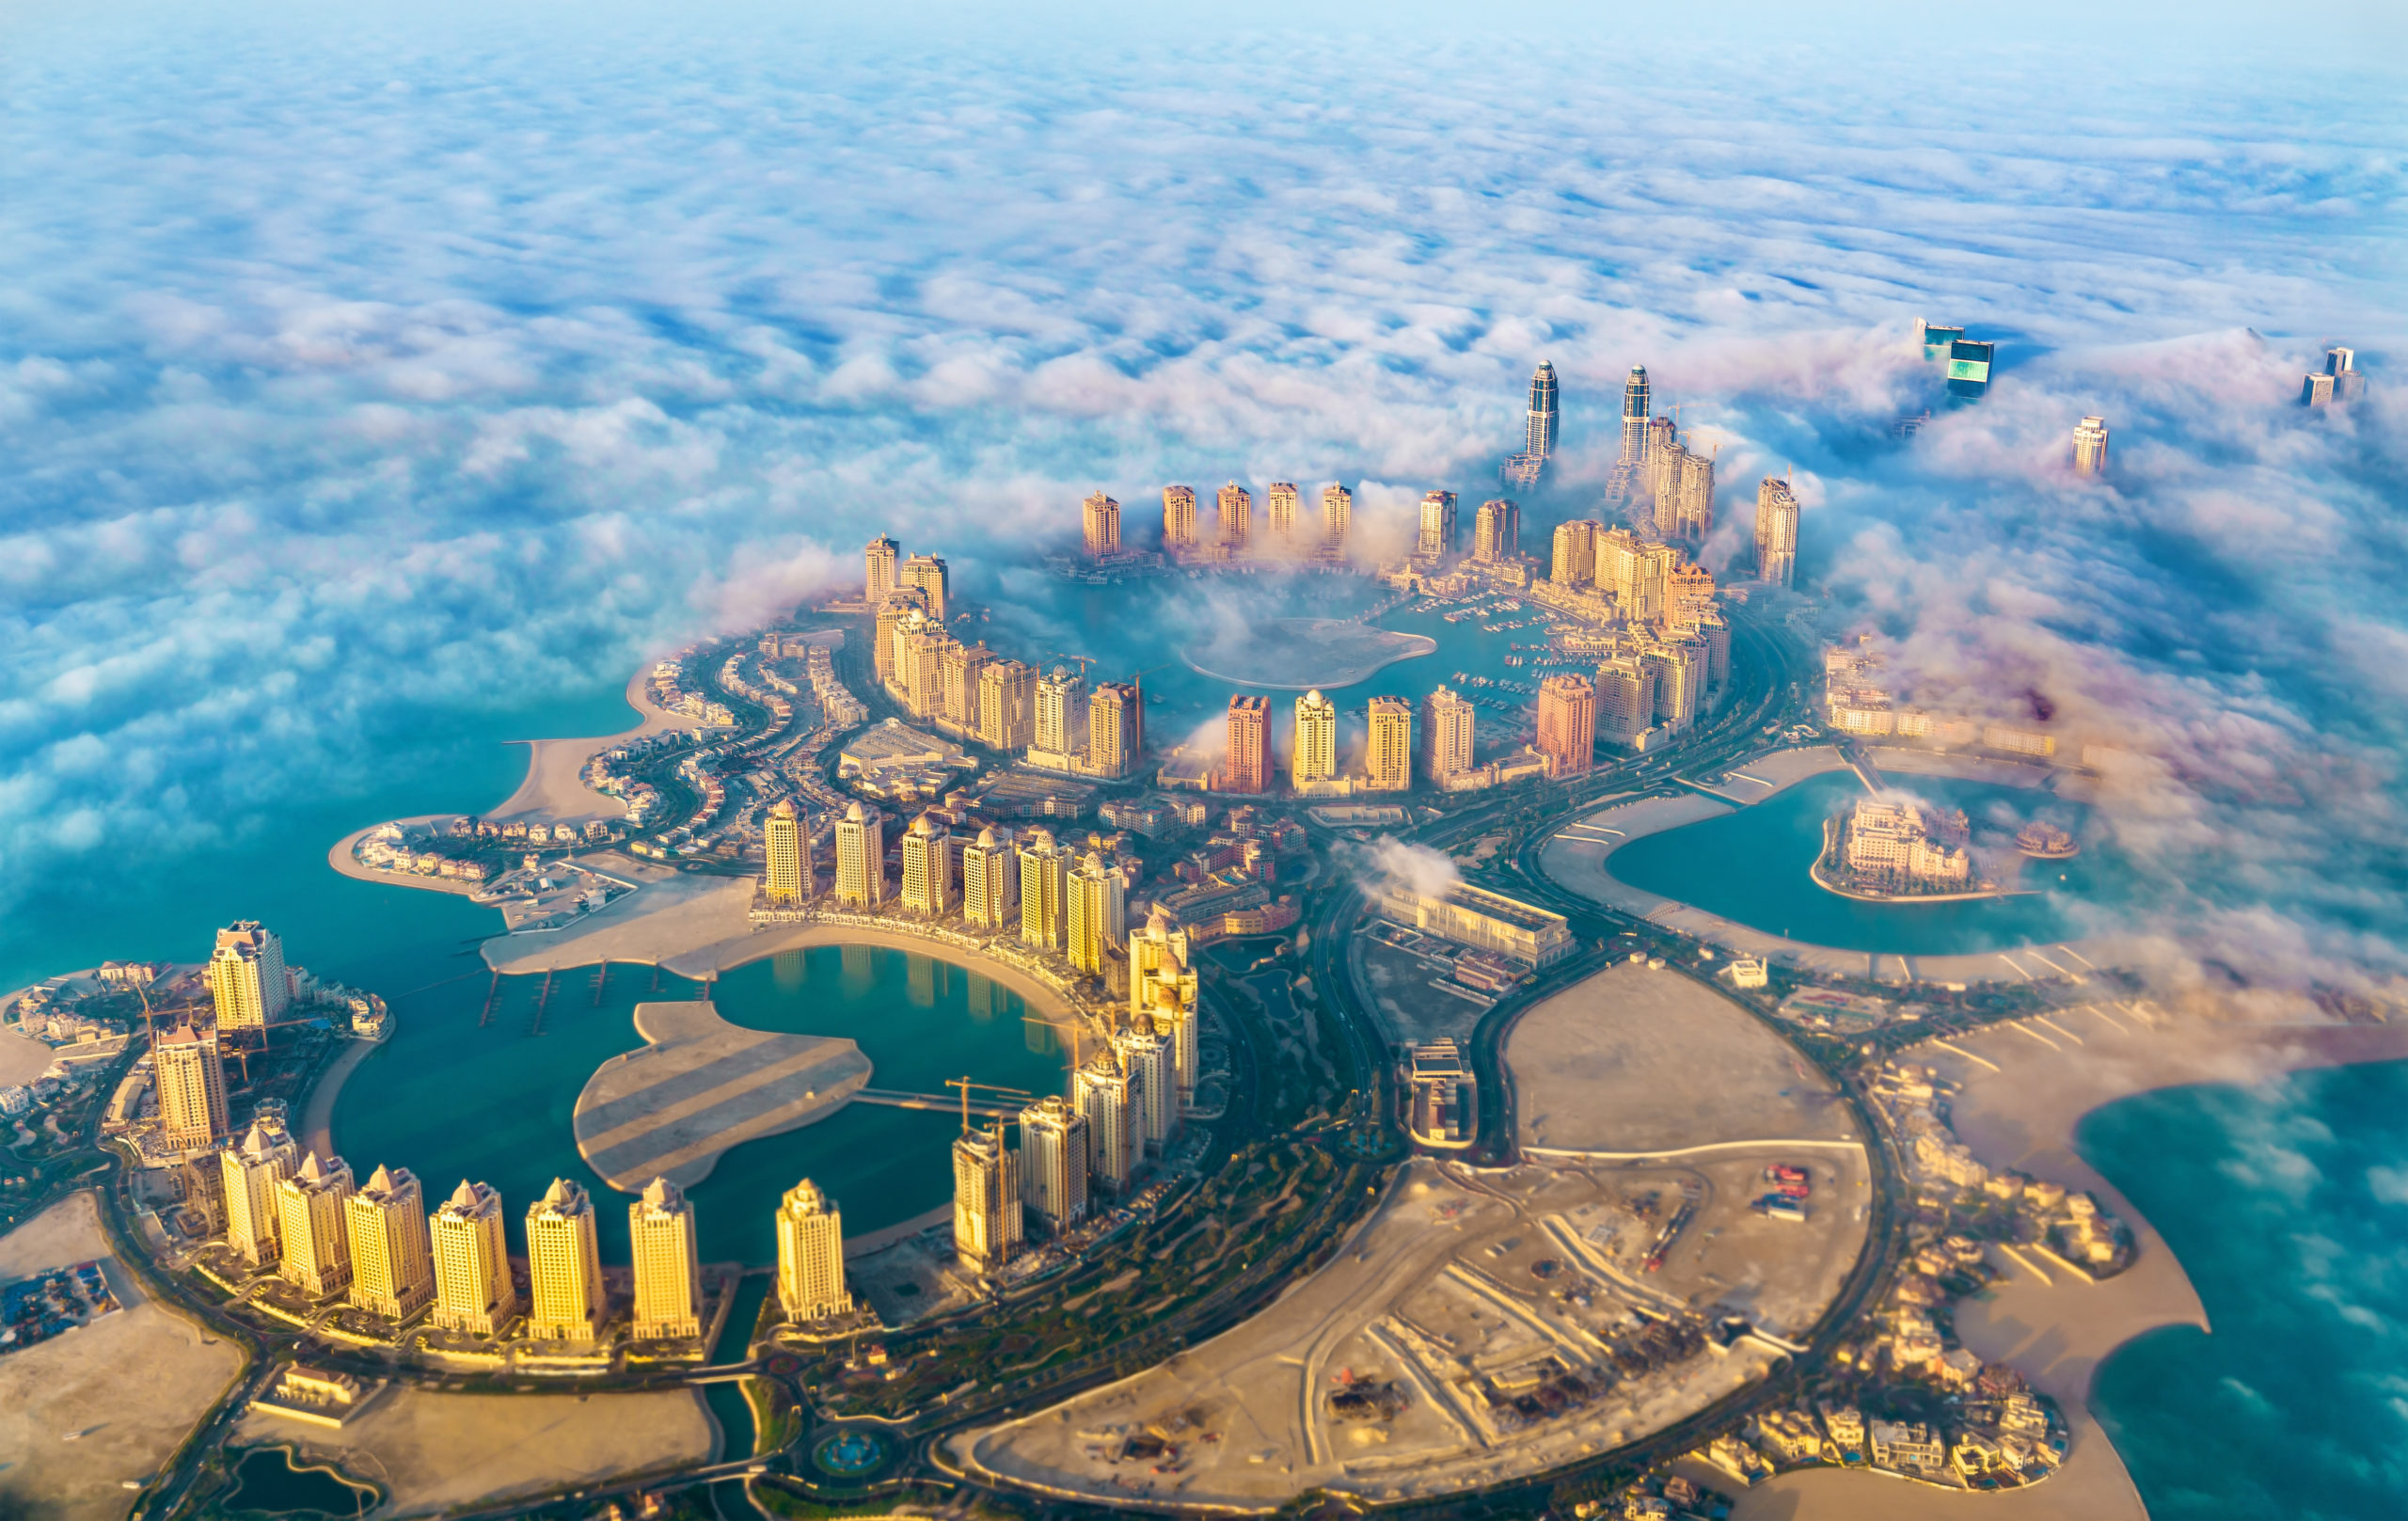 Aerial view of the Pearl-Qatar island in Doha through the morning fog. Qatar, the Persian Gulf. From Shutterstock - By Leonid Andronov